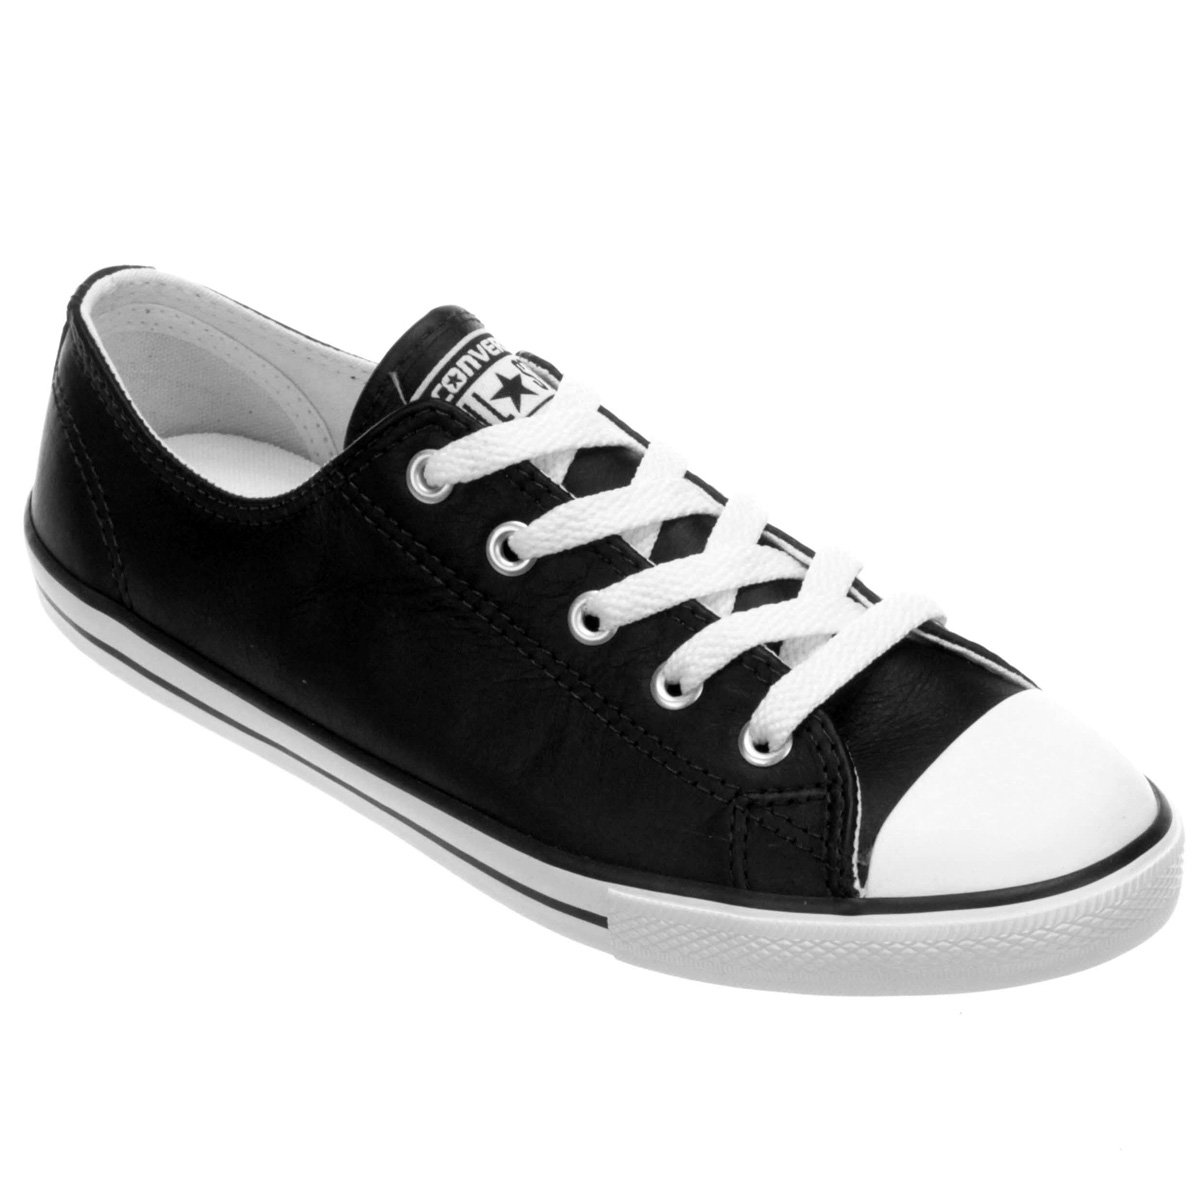 843407306ca Tênis Converse All Star CT AS Dainty Leather OX - Compre Agora ...